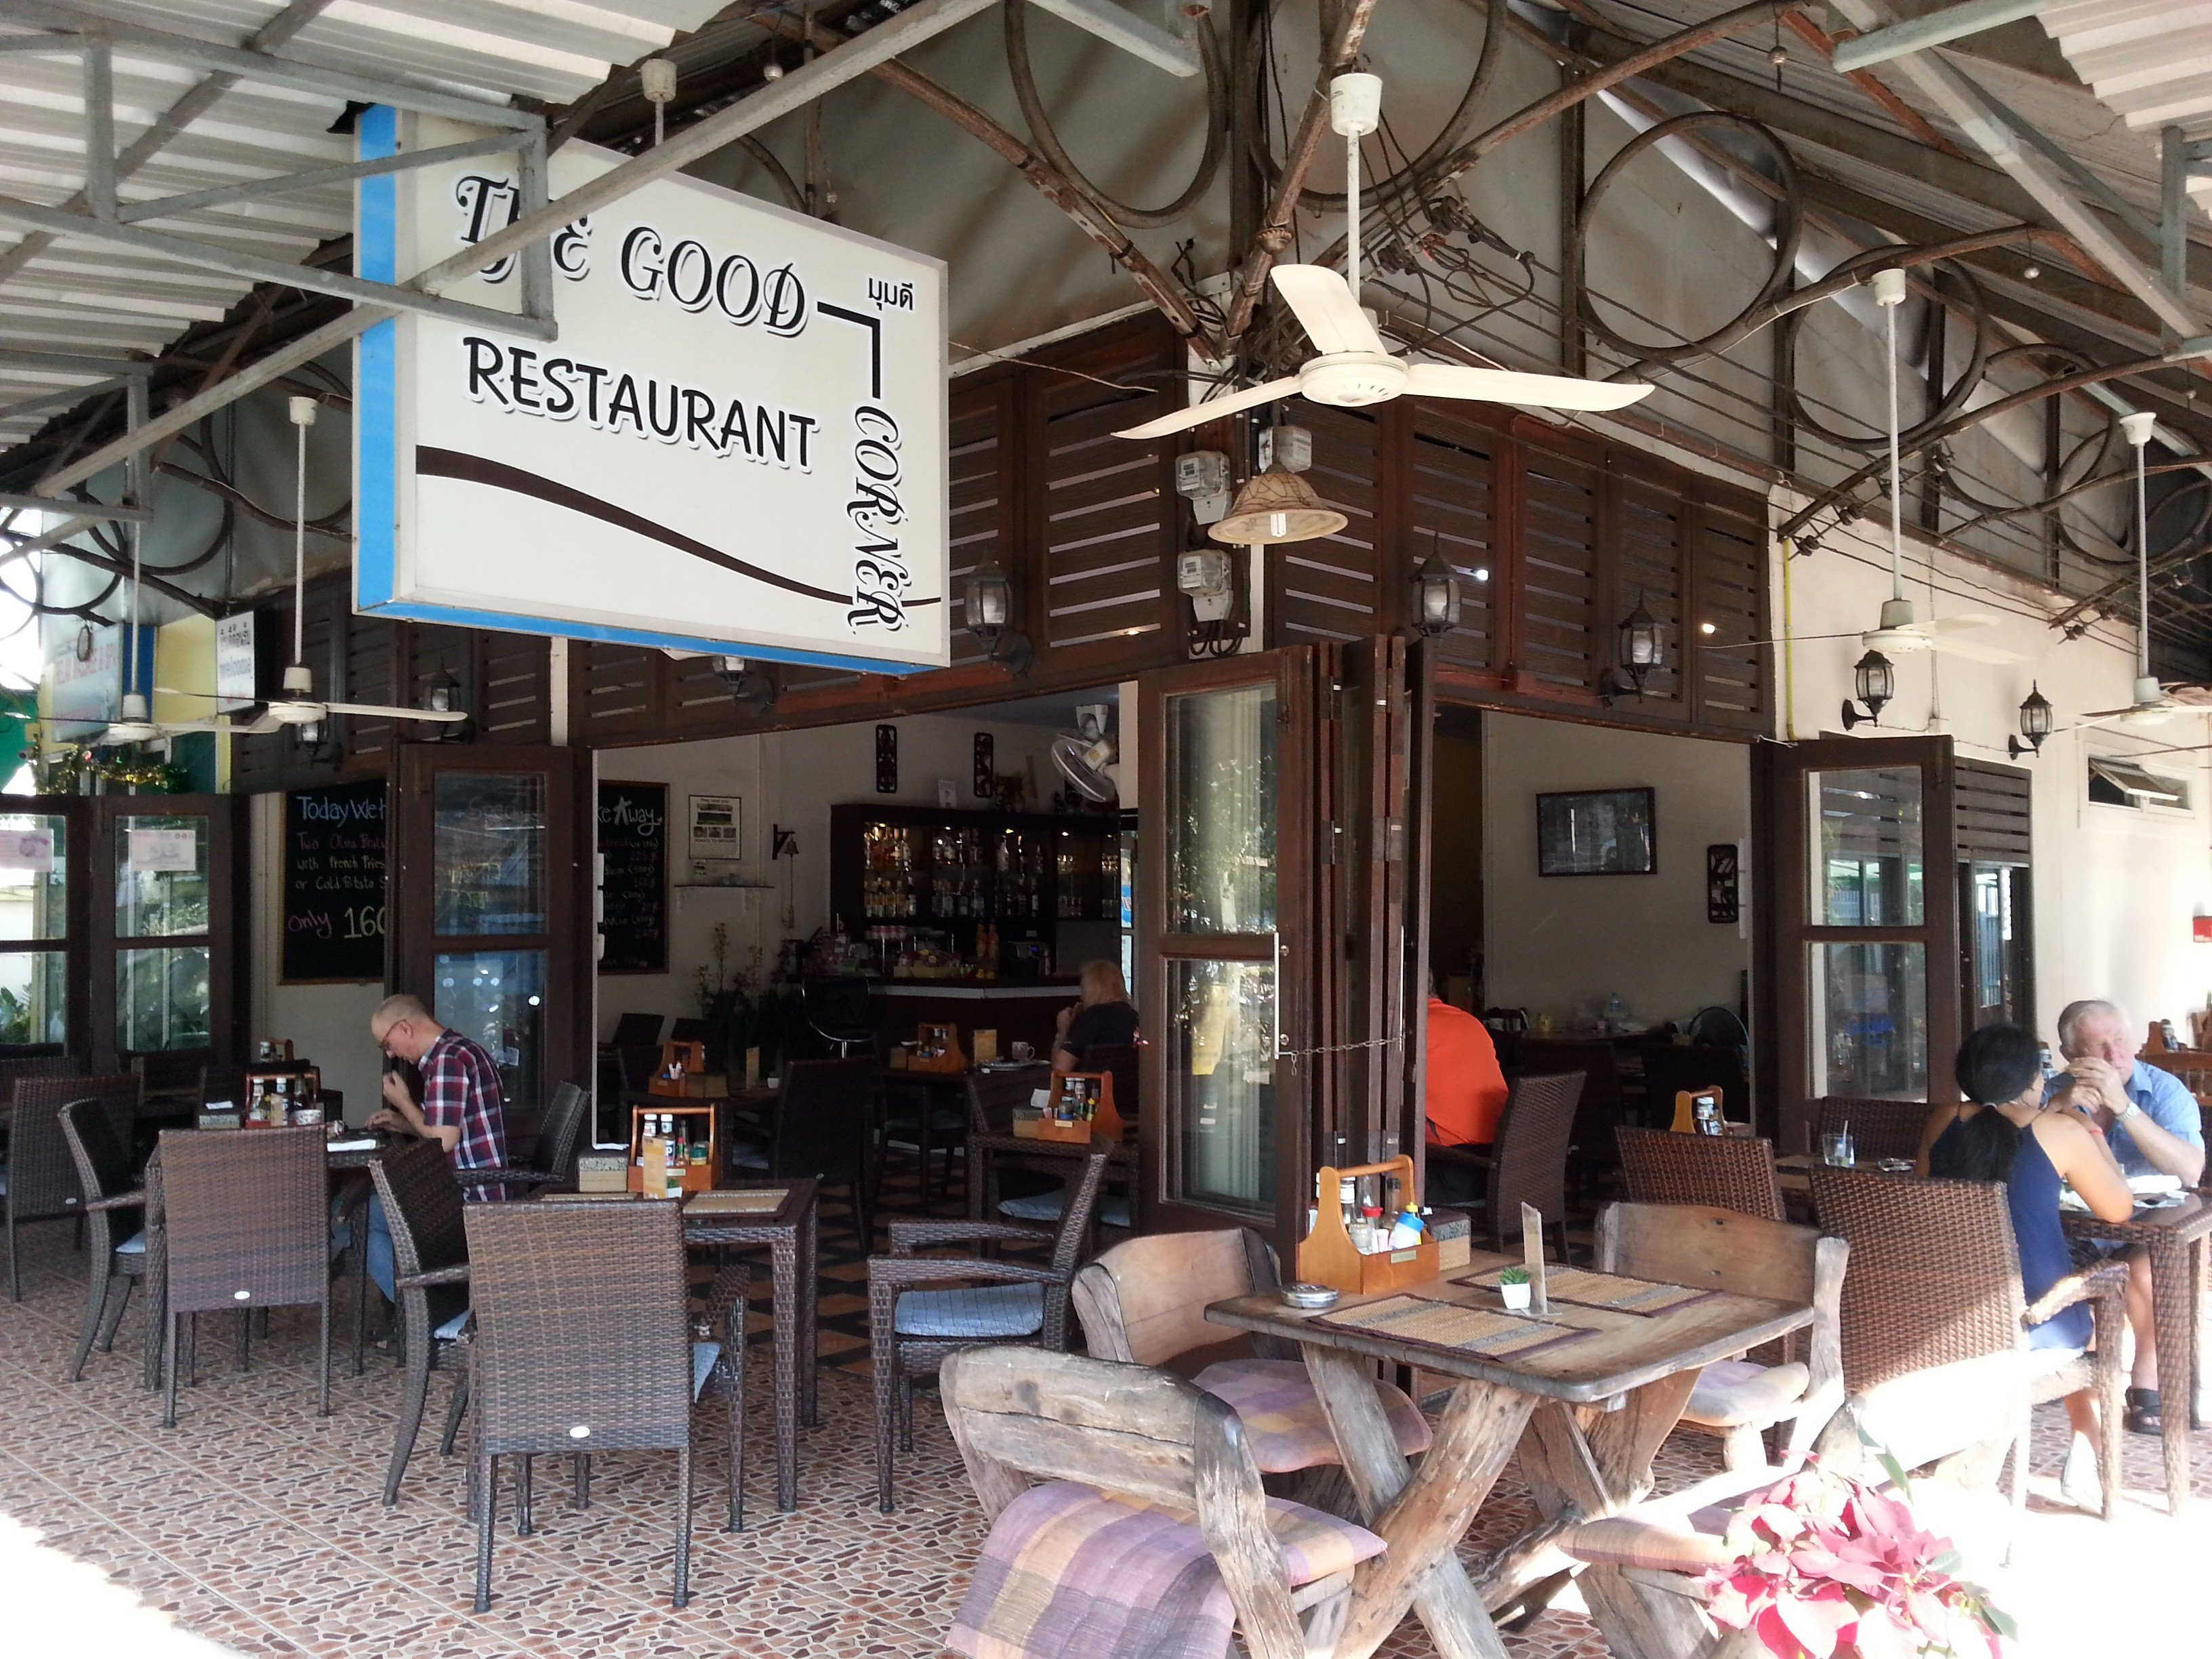 The Good Corner Restaurant in Udon Thani